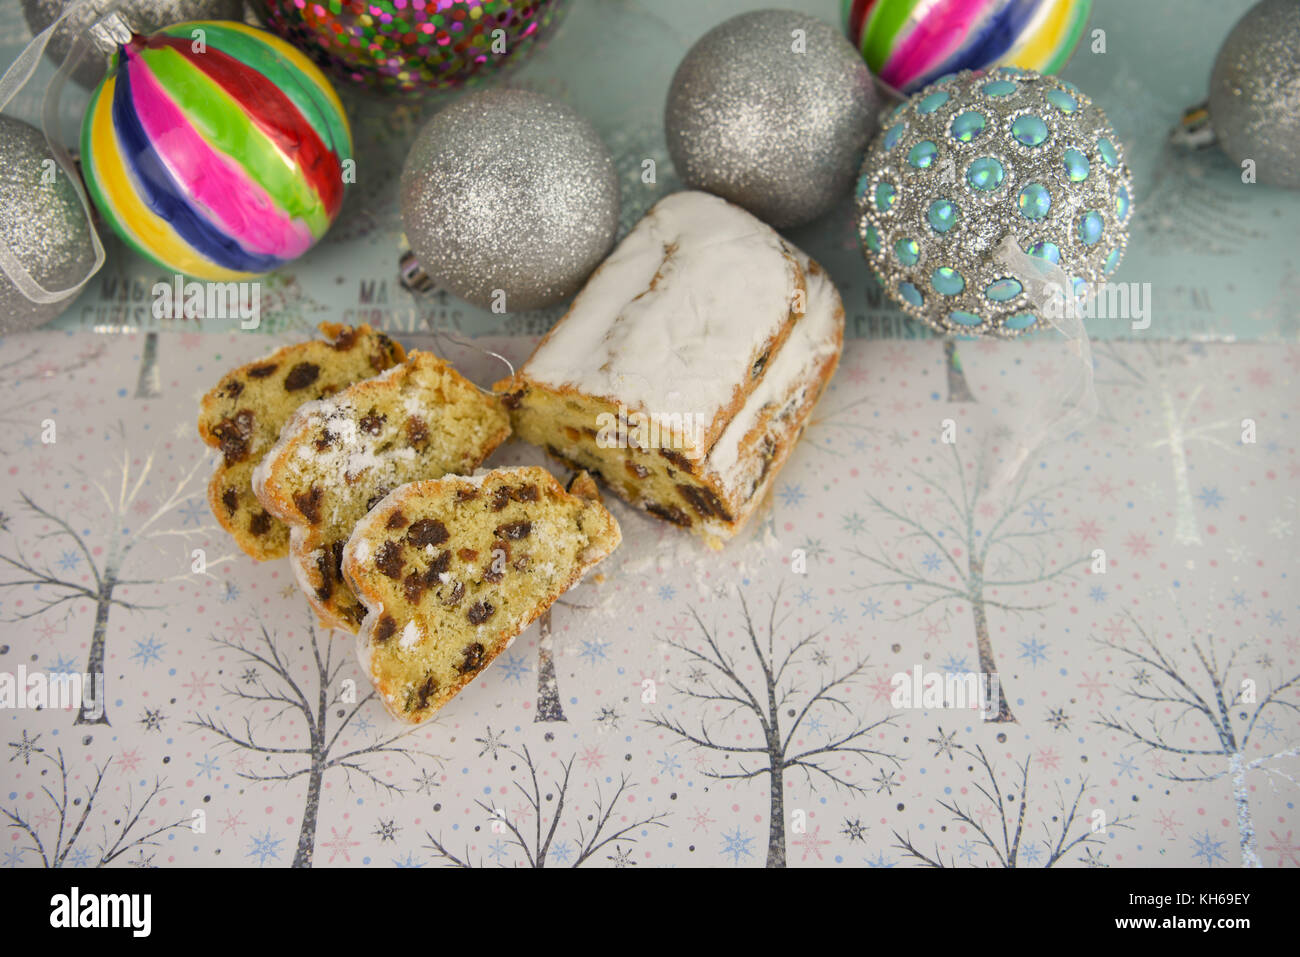 Christmas Food Photography Image Of Traditional Fruit Stollen With